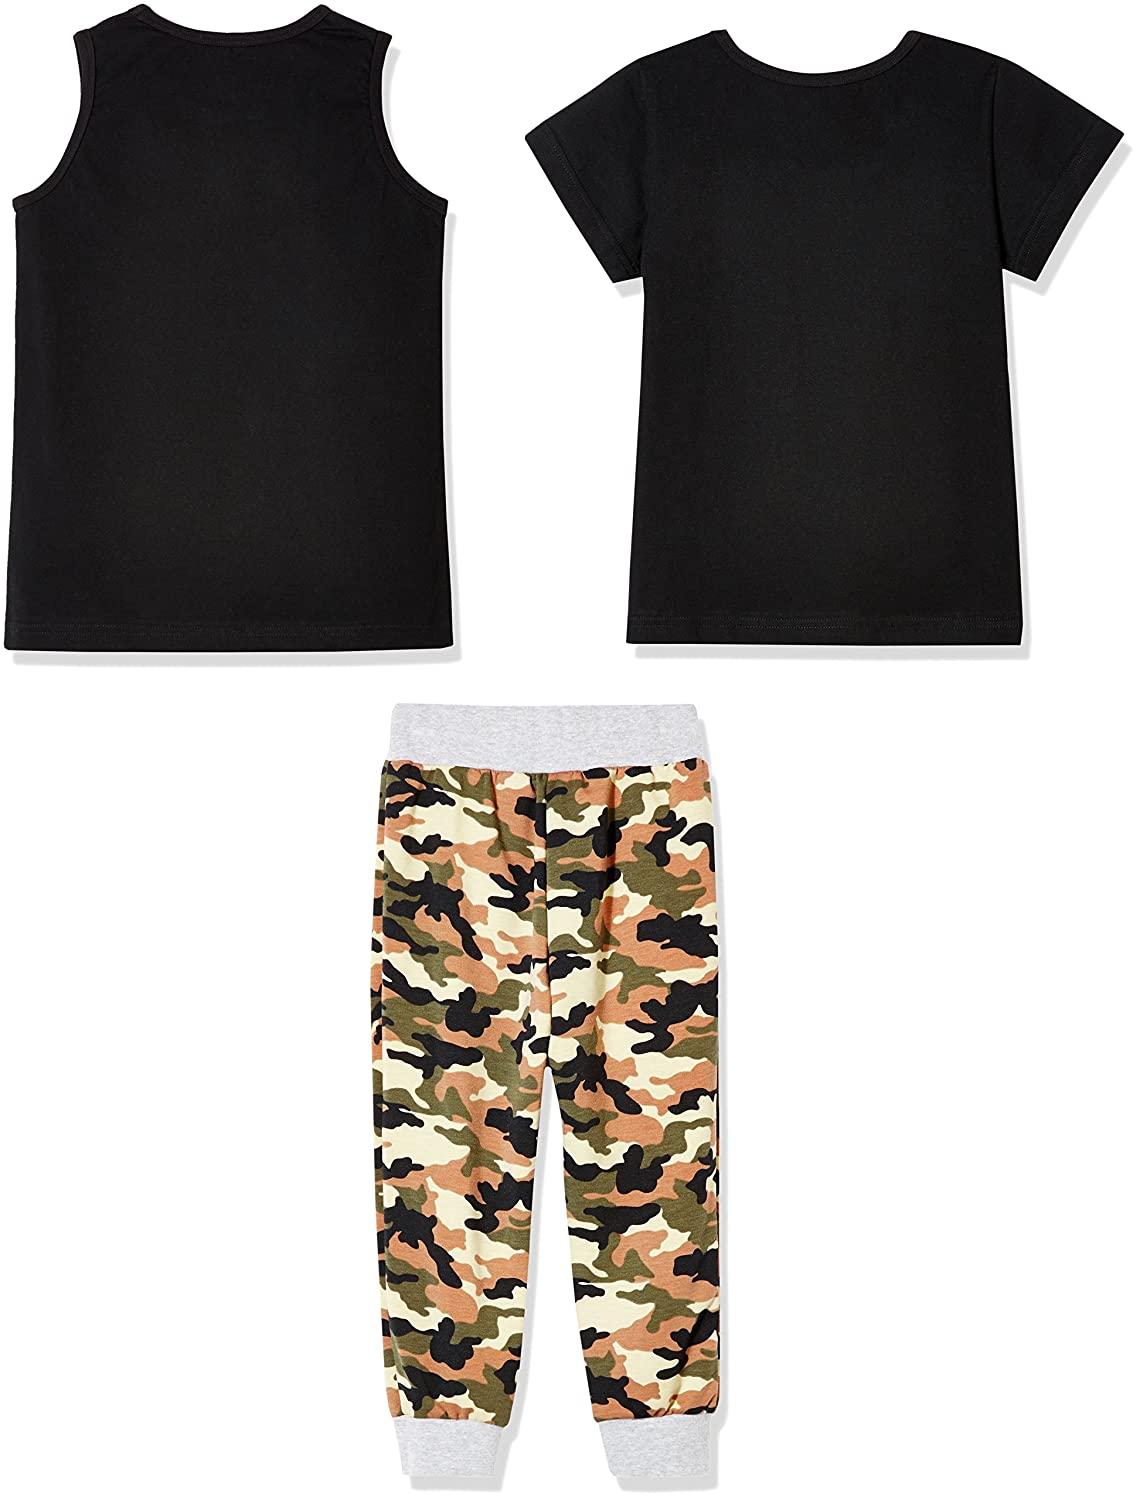 b50c02b1a585 Sprout Star Boy's Brooklyn and Stay Wild 100% Cotton Jersey T-Shirt, Tank  Top and Pants 3Pcs Set-Camouflage